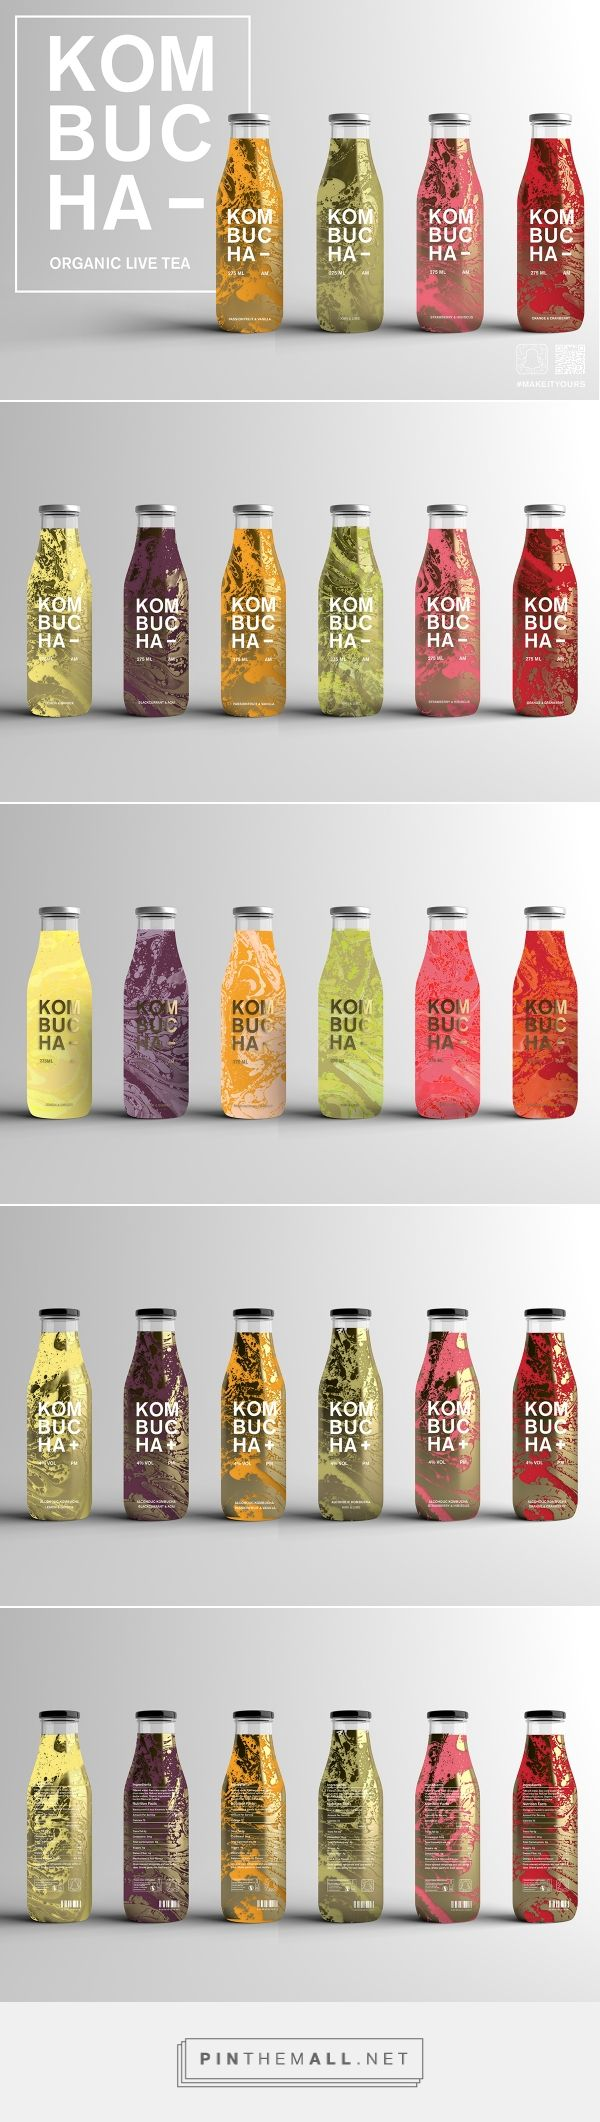 Kombucha concept by Molly Watkins. Source: Behance. PIn curated by #SFields99 #packaging #design #inspiration #kombucha #bottle #concept